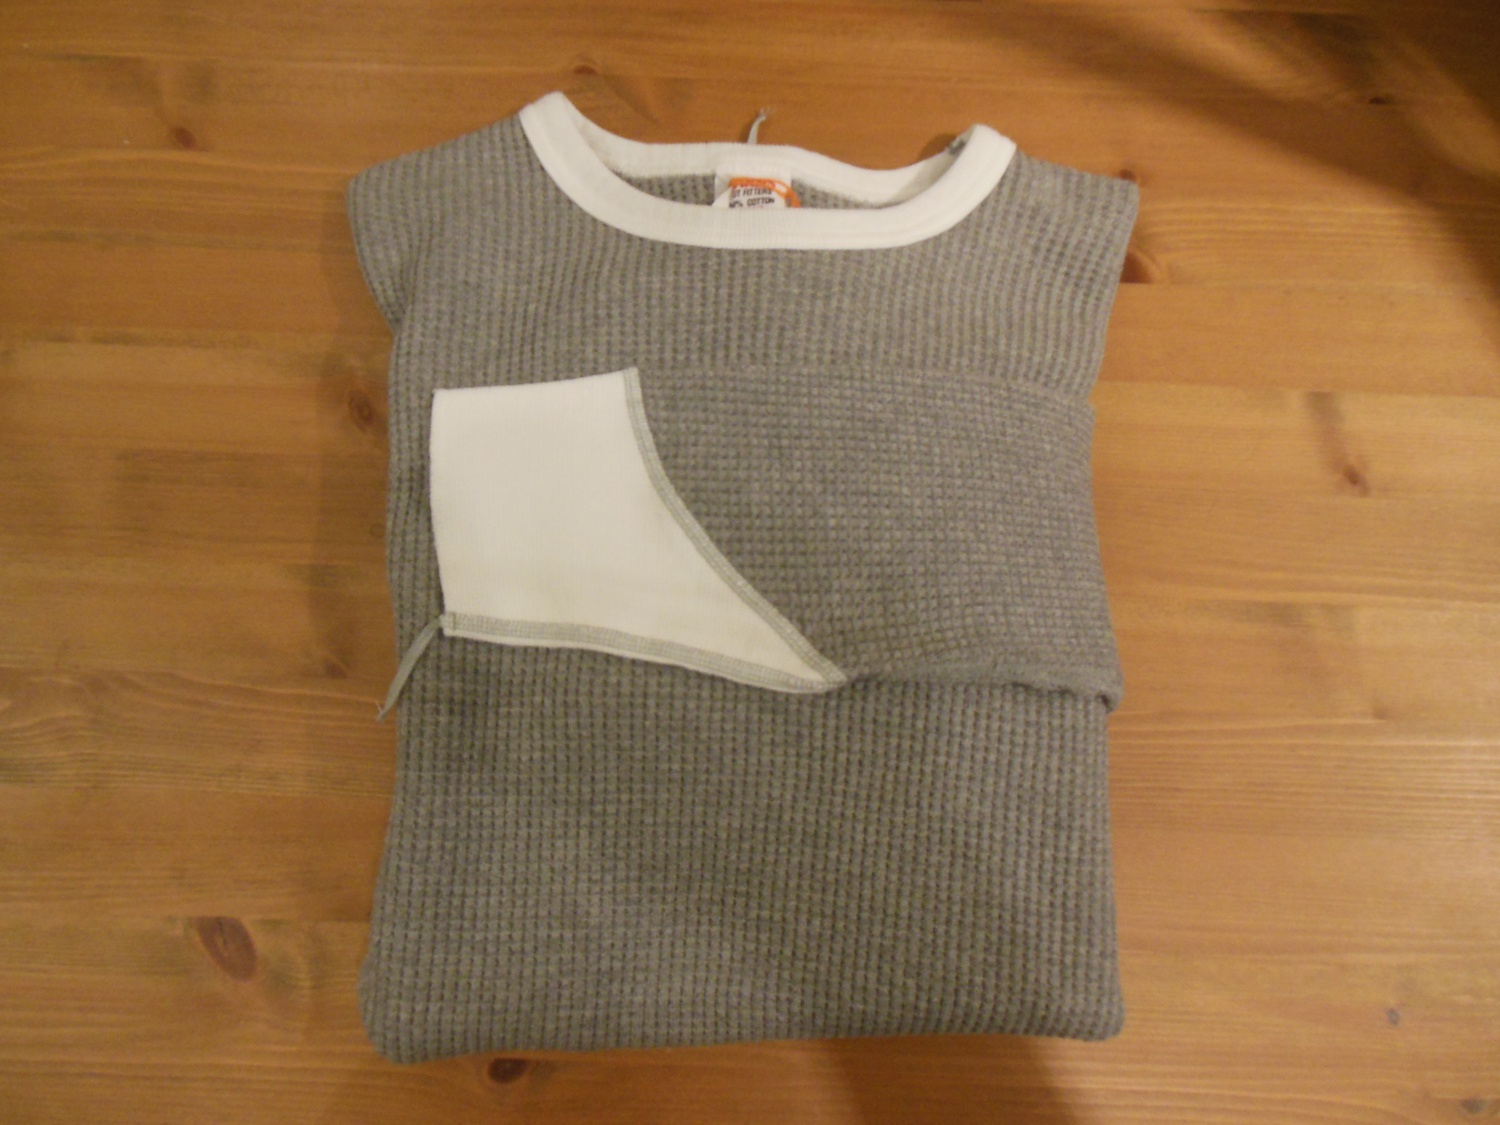 Barns outfitters VINTAGE WAFFLE CREW TEE